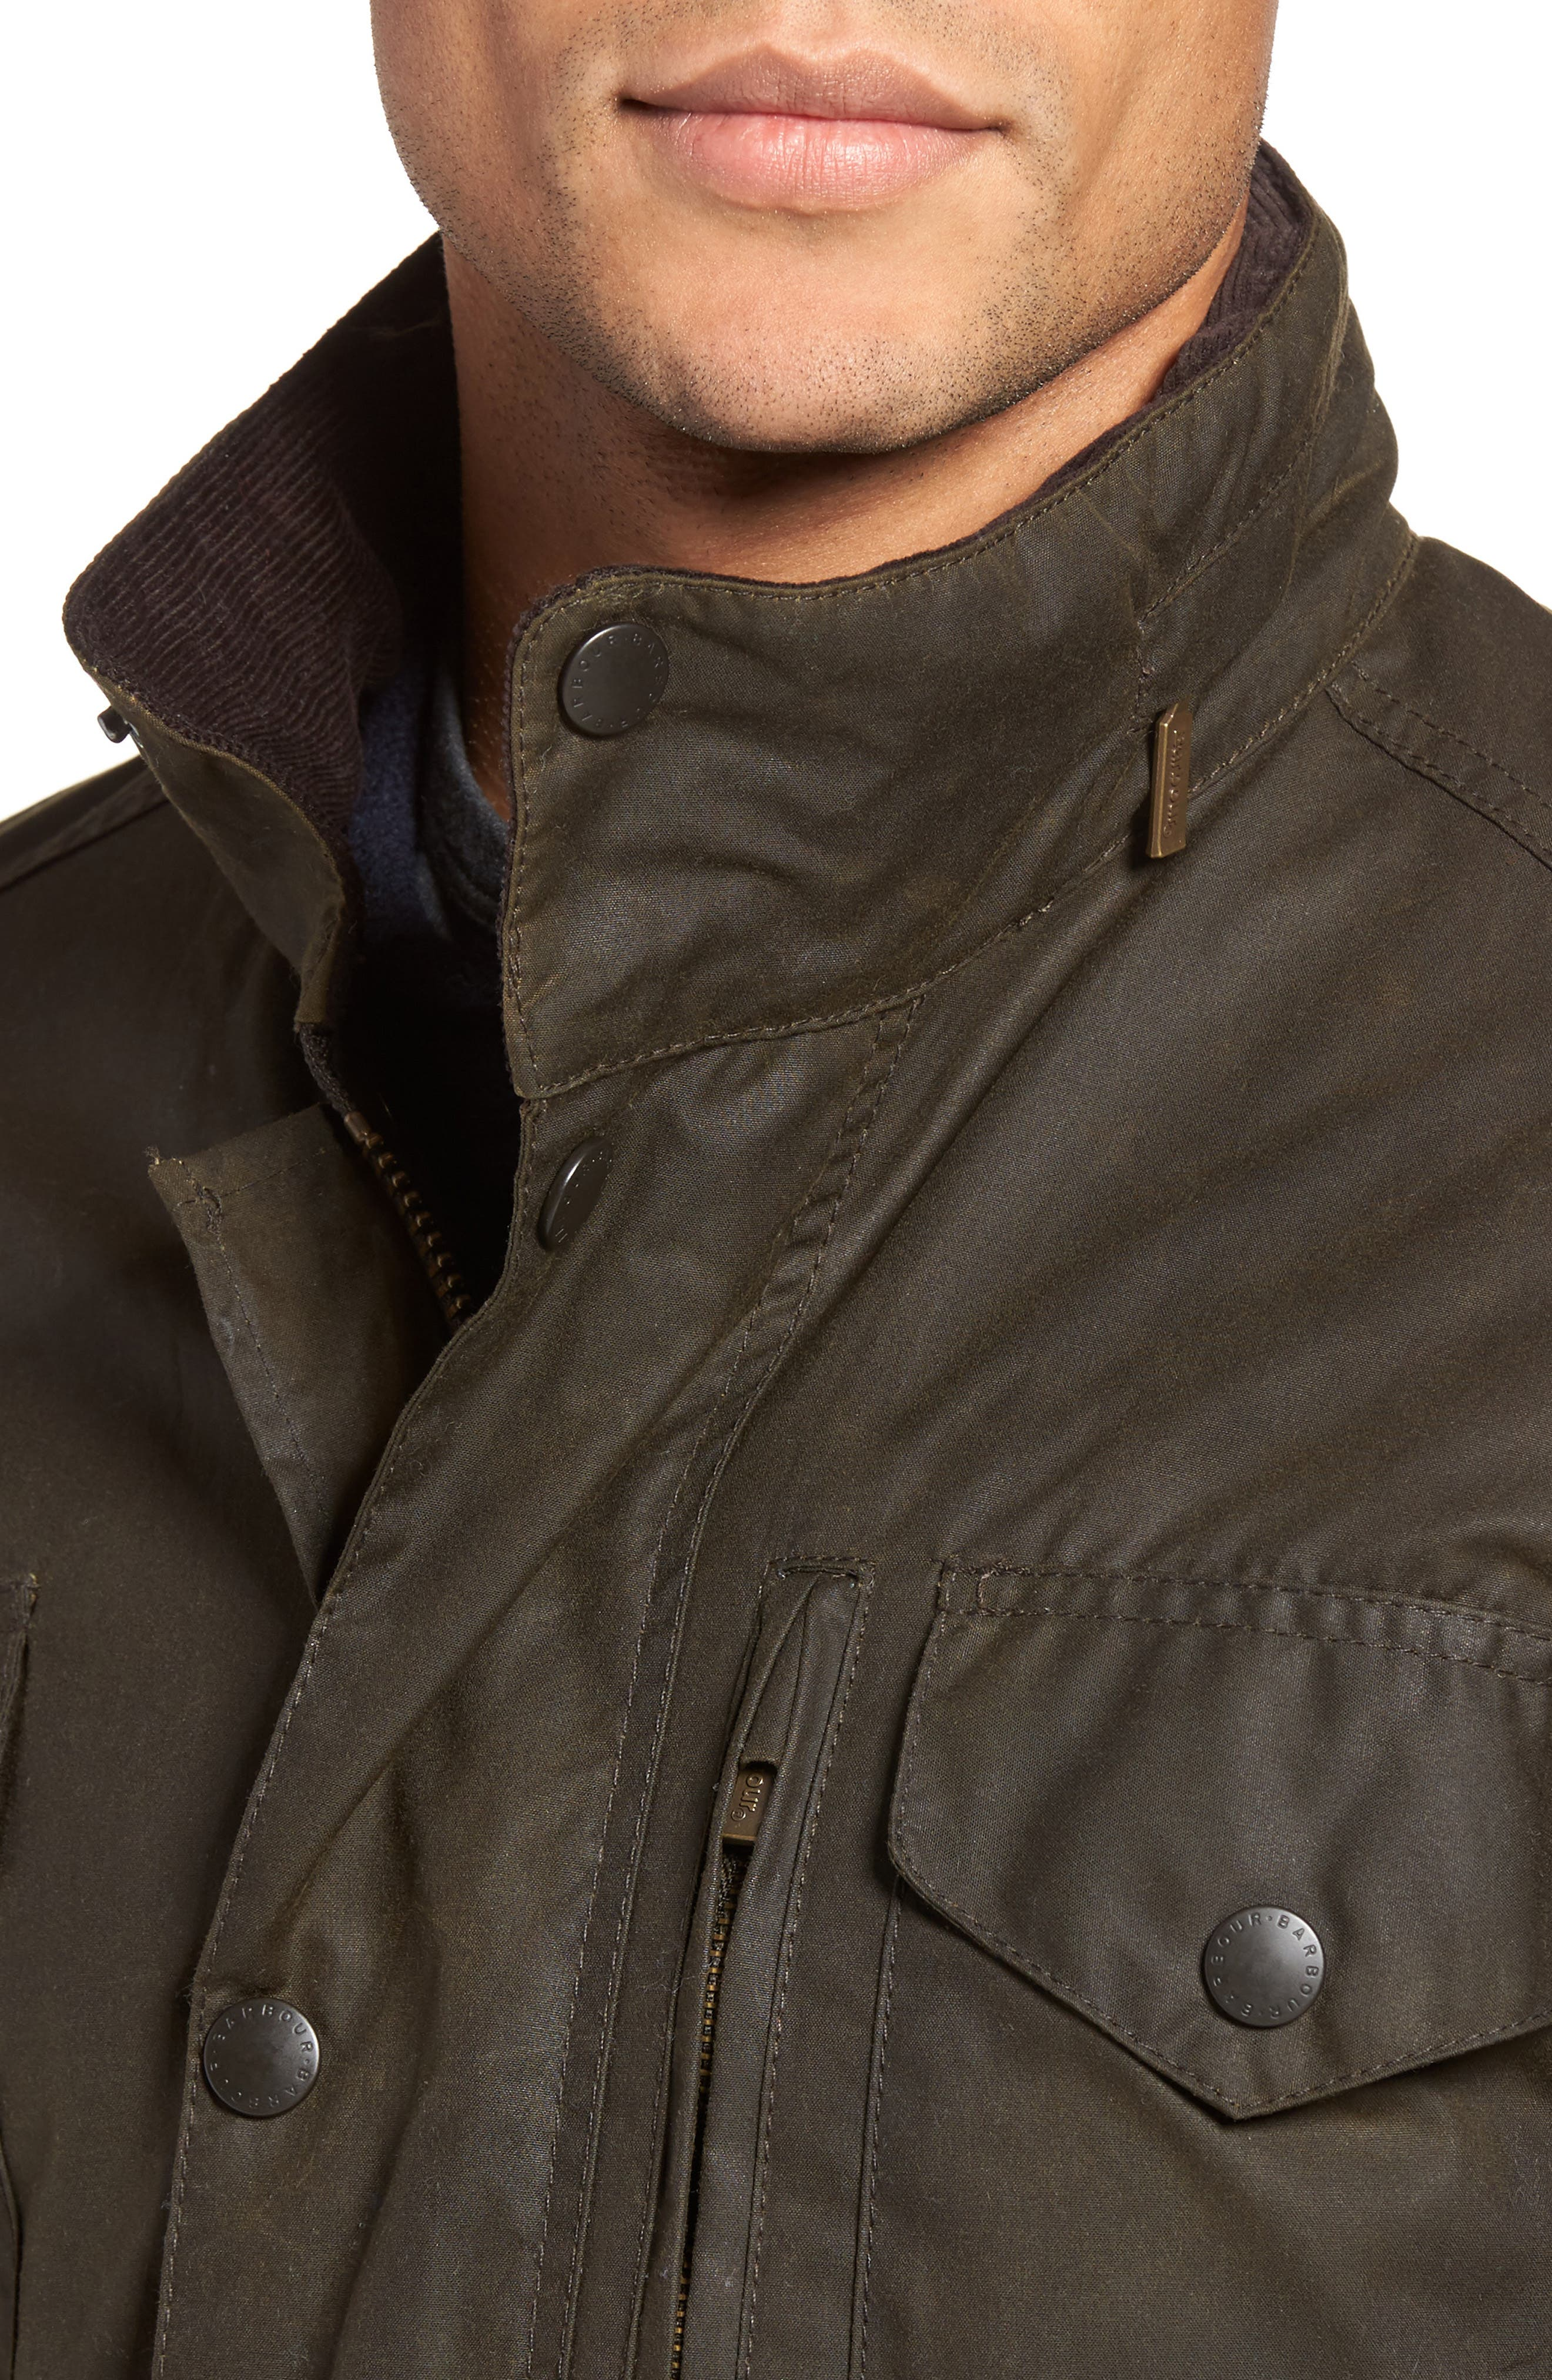 BARBOUR, Sapper Regular Fit Weatherproof Waxed Cotton Jacket, Alternate thumbnail 5, color, OLIVE